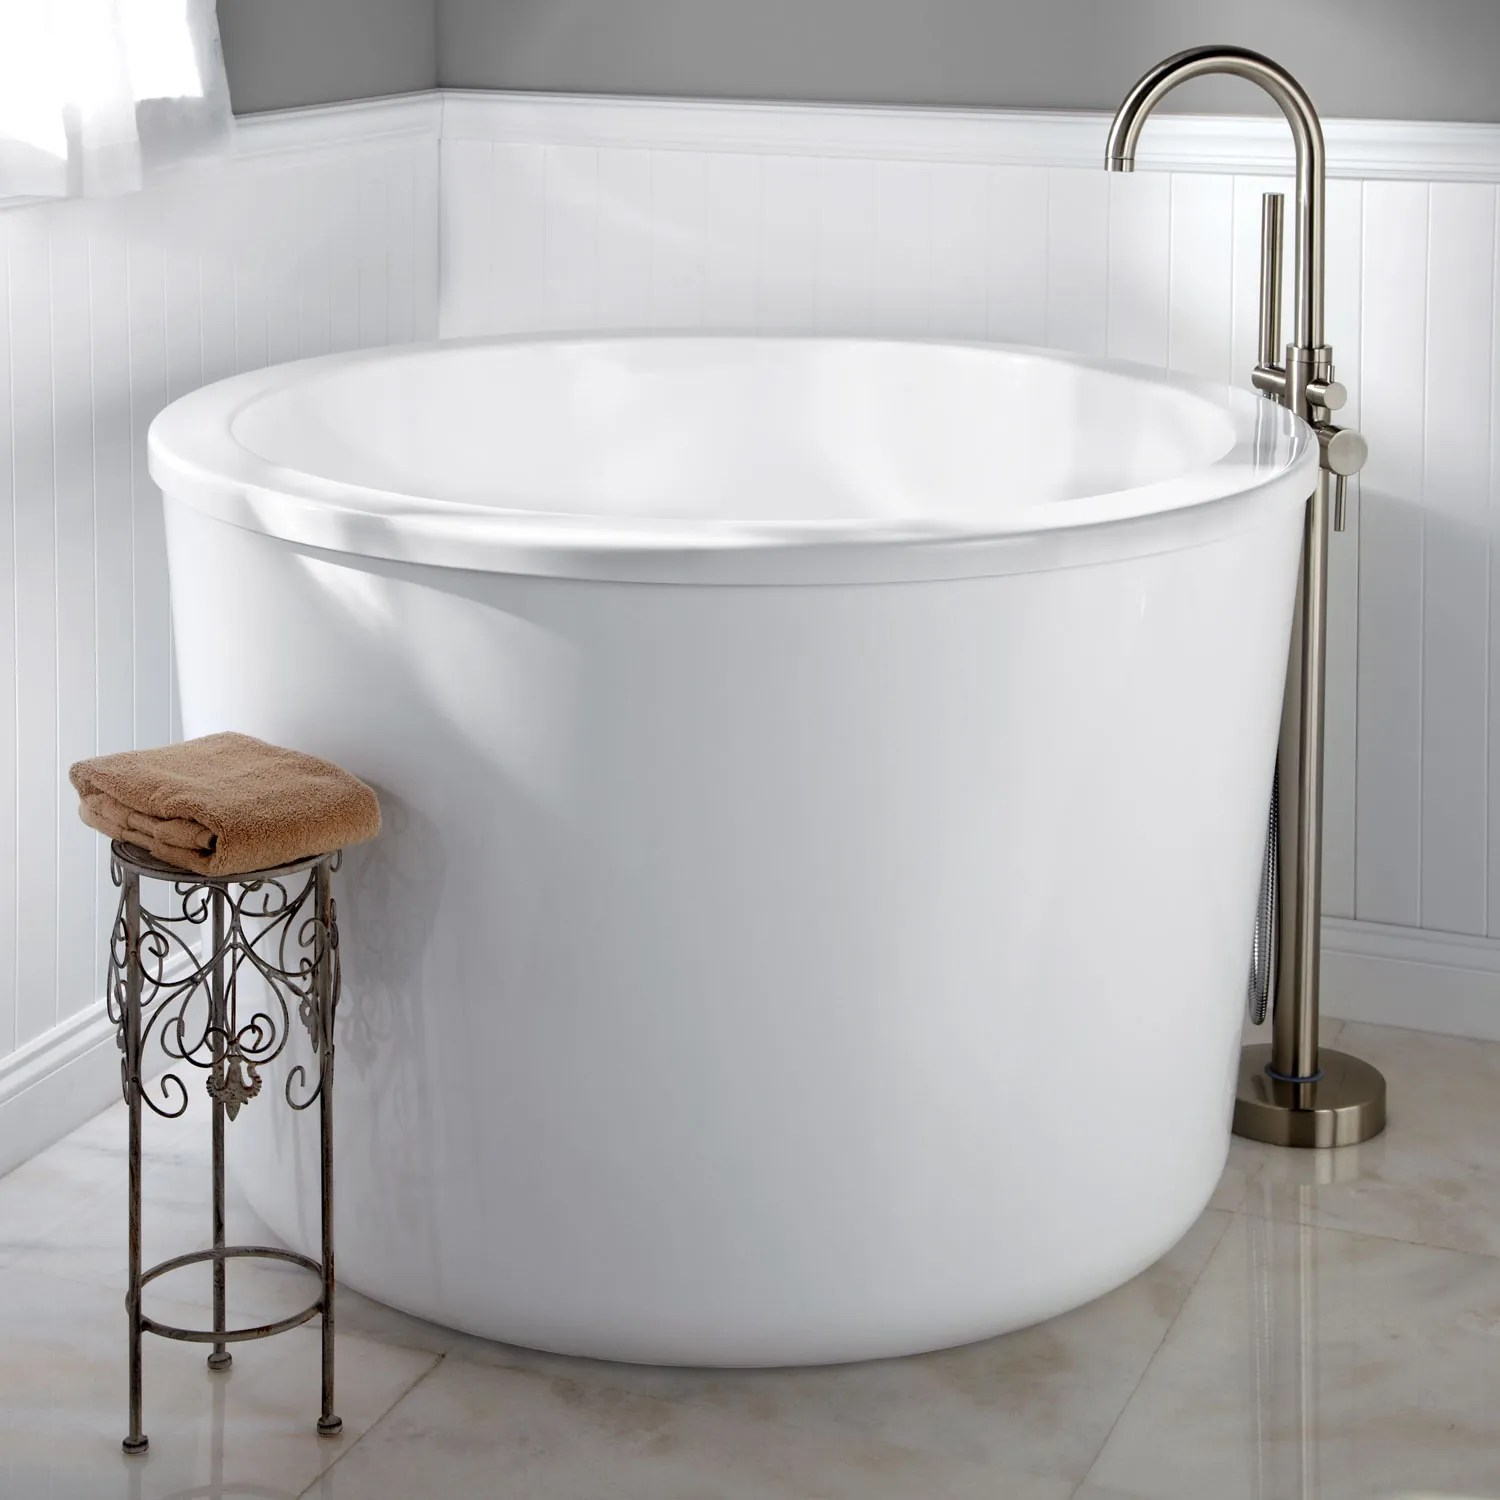 Remodeling With Japanese Soaking Tubs